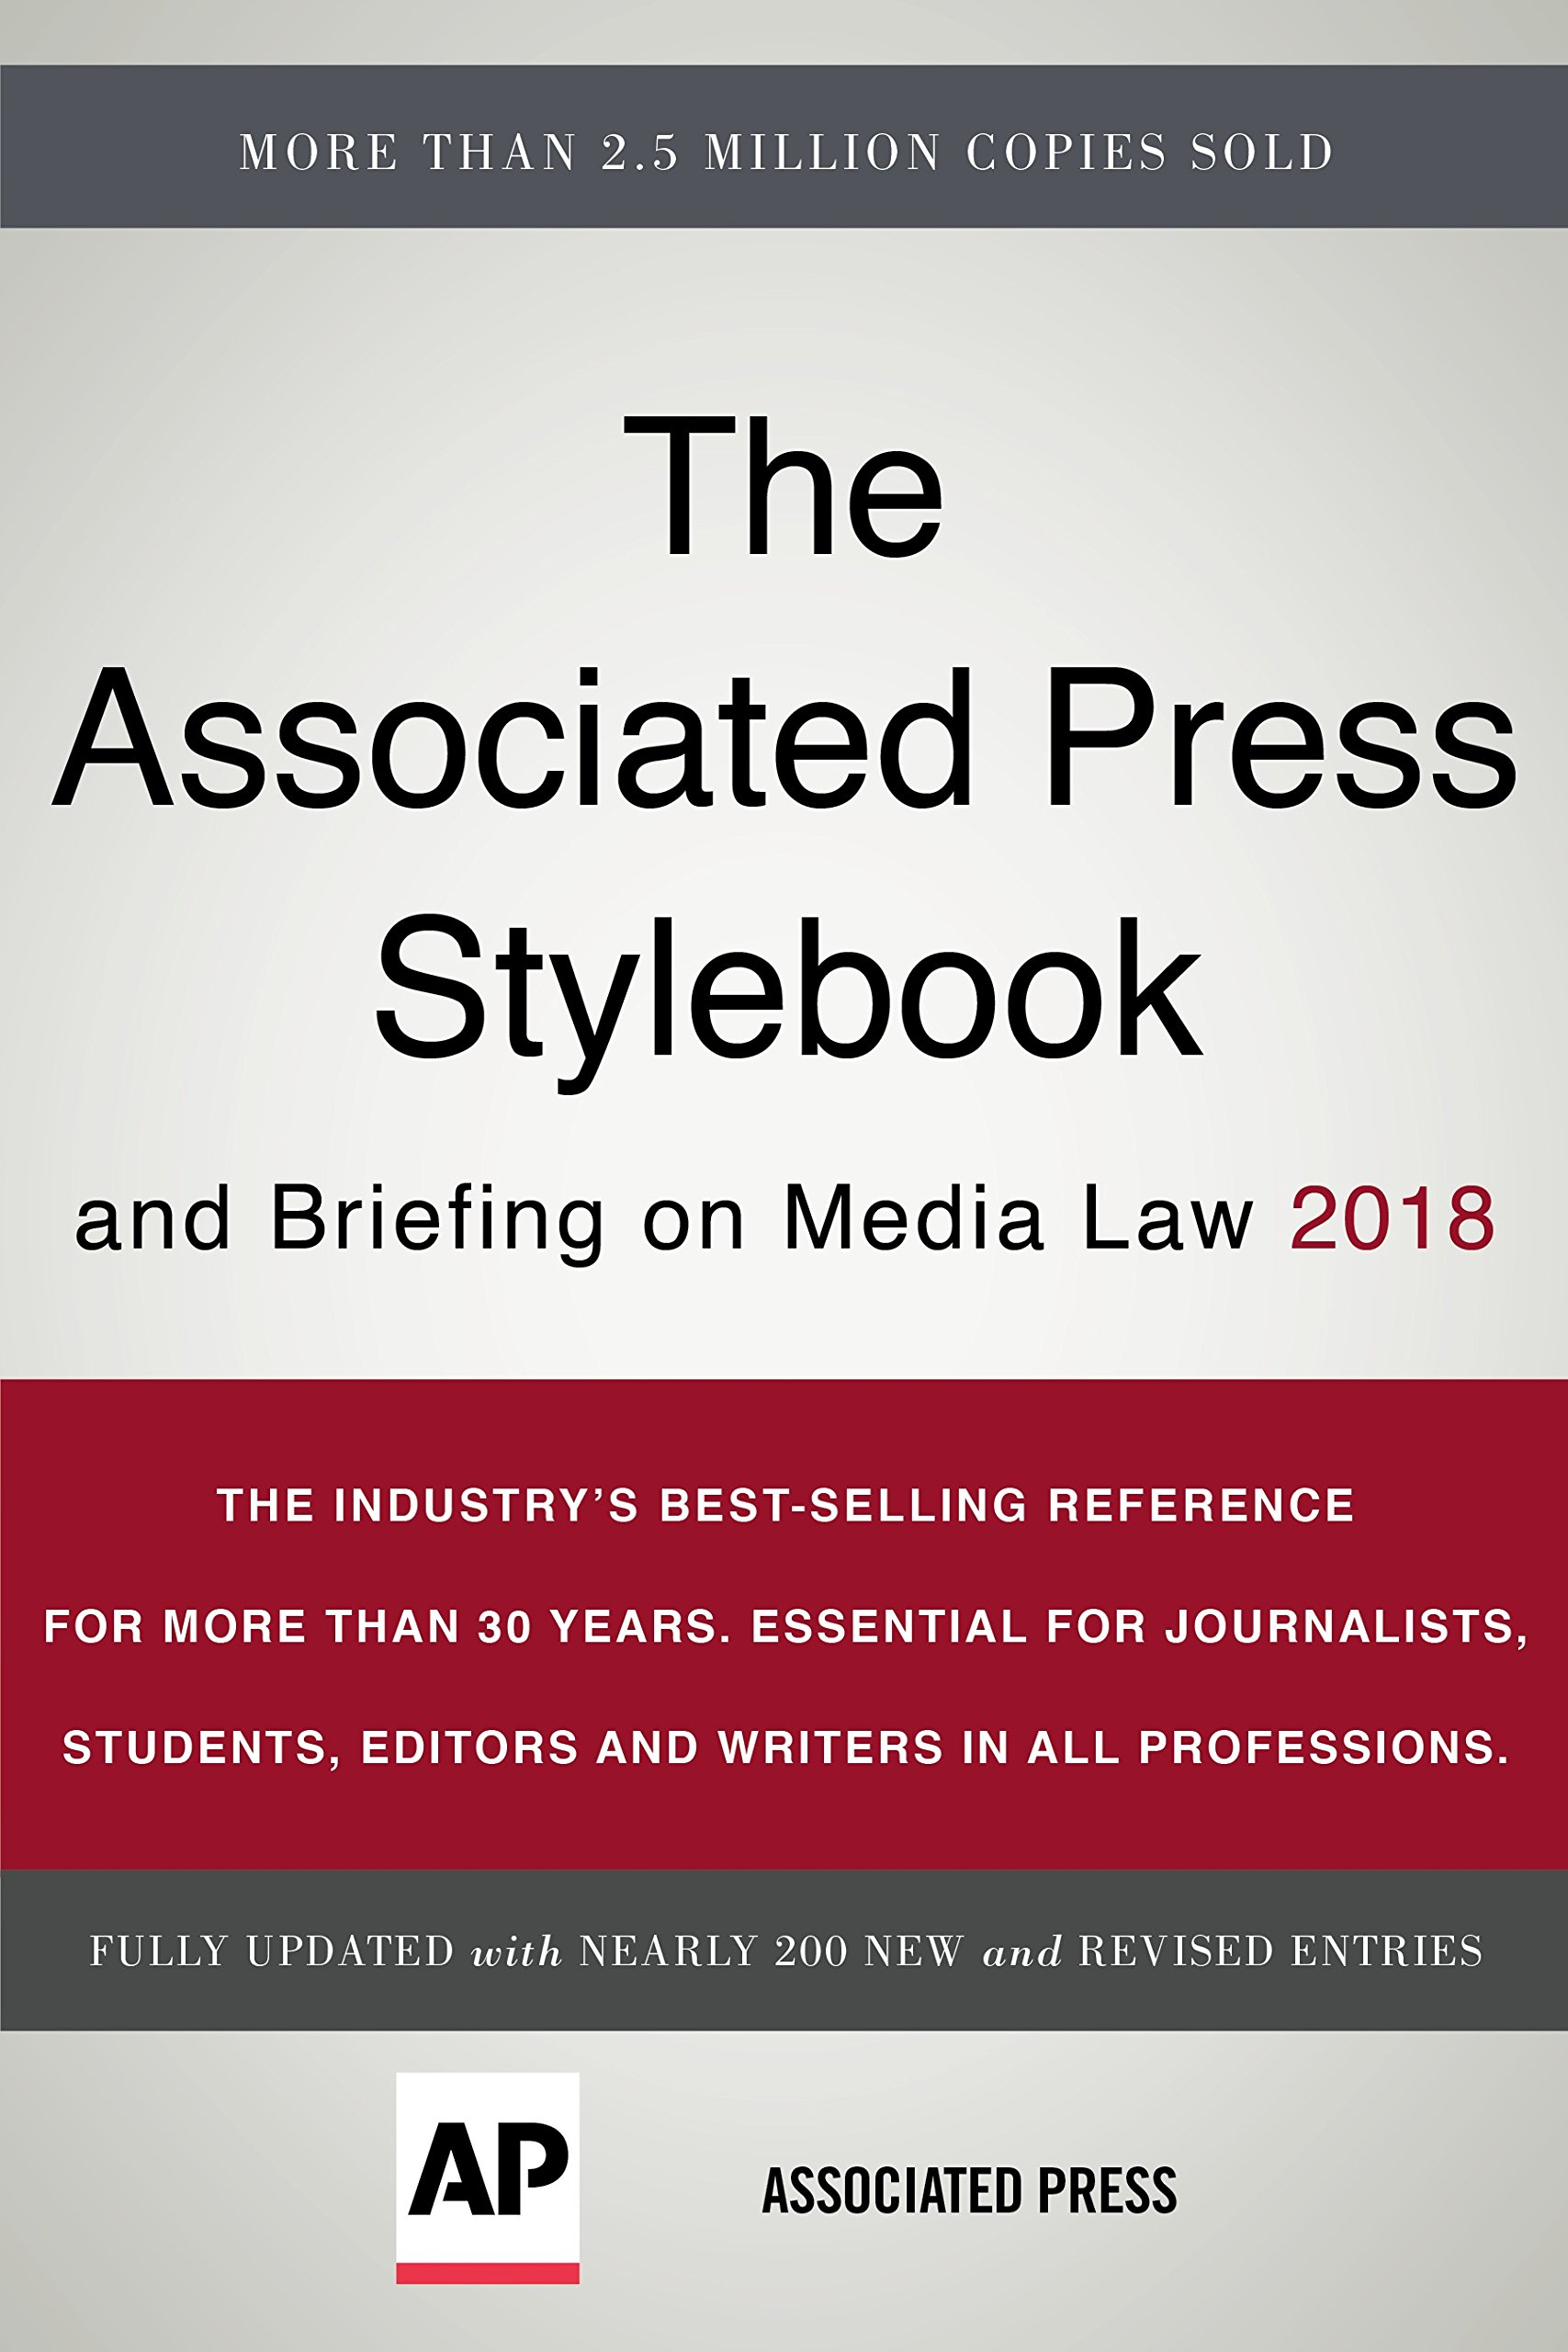 The associated press stylebook 2018 and briefing on media law the associated press stylebook 2018 and briefing on media law associated press stylebook and briefing on media law associated press 9781541672383 fandeluxe Choice Image